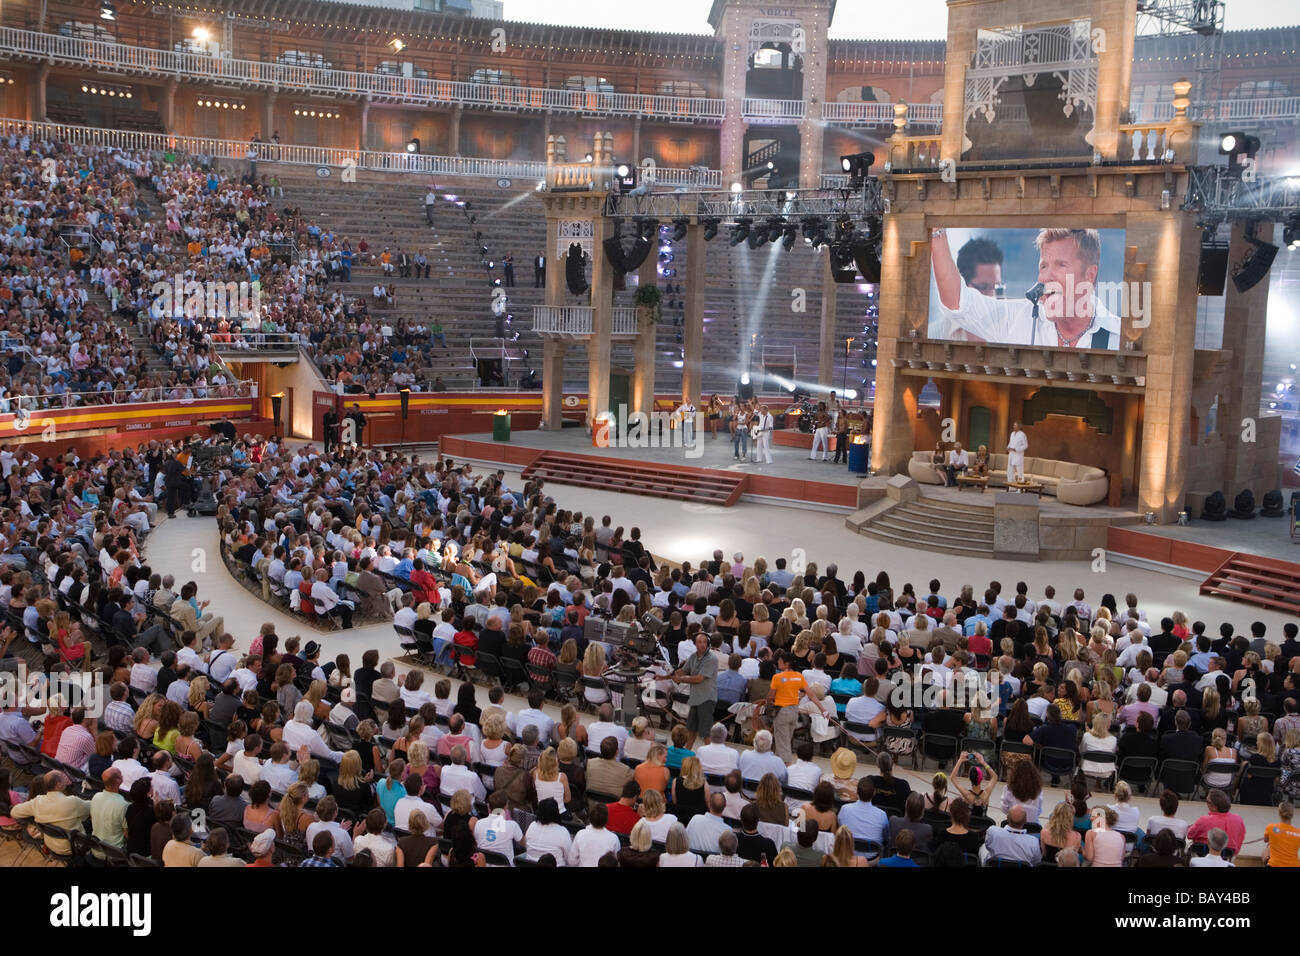 Performance by Dieter Bohlen and Mark Medlock at Wetten, dass... German Television Production, Palma Plaza de Toros - Stock Image